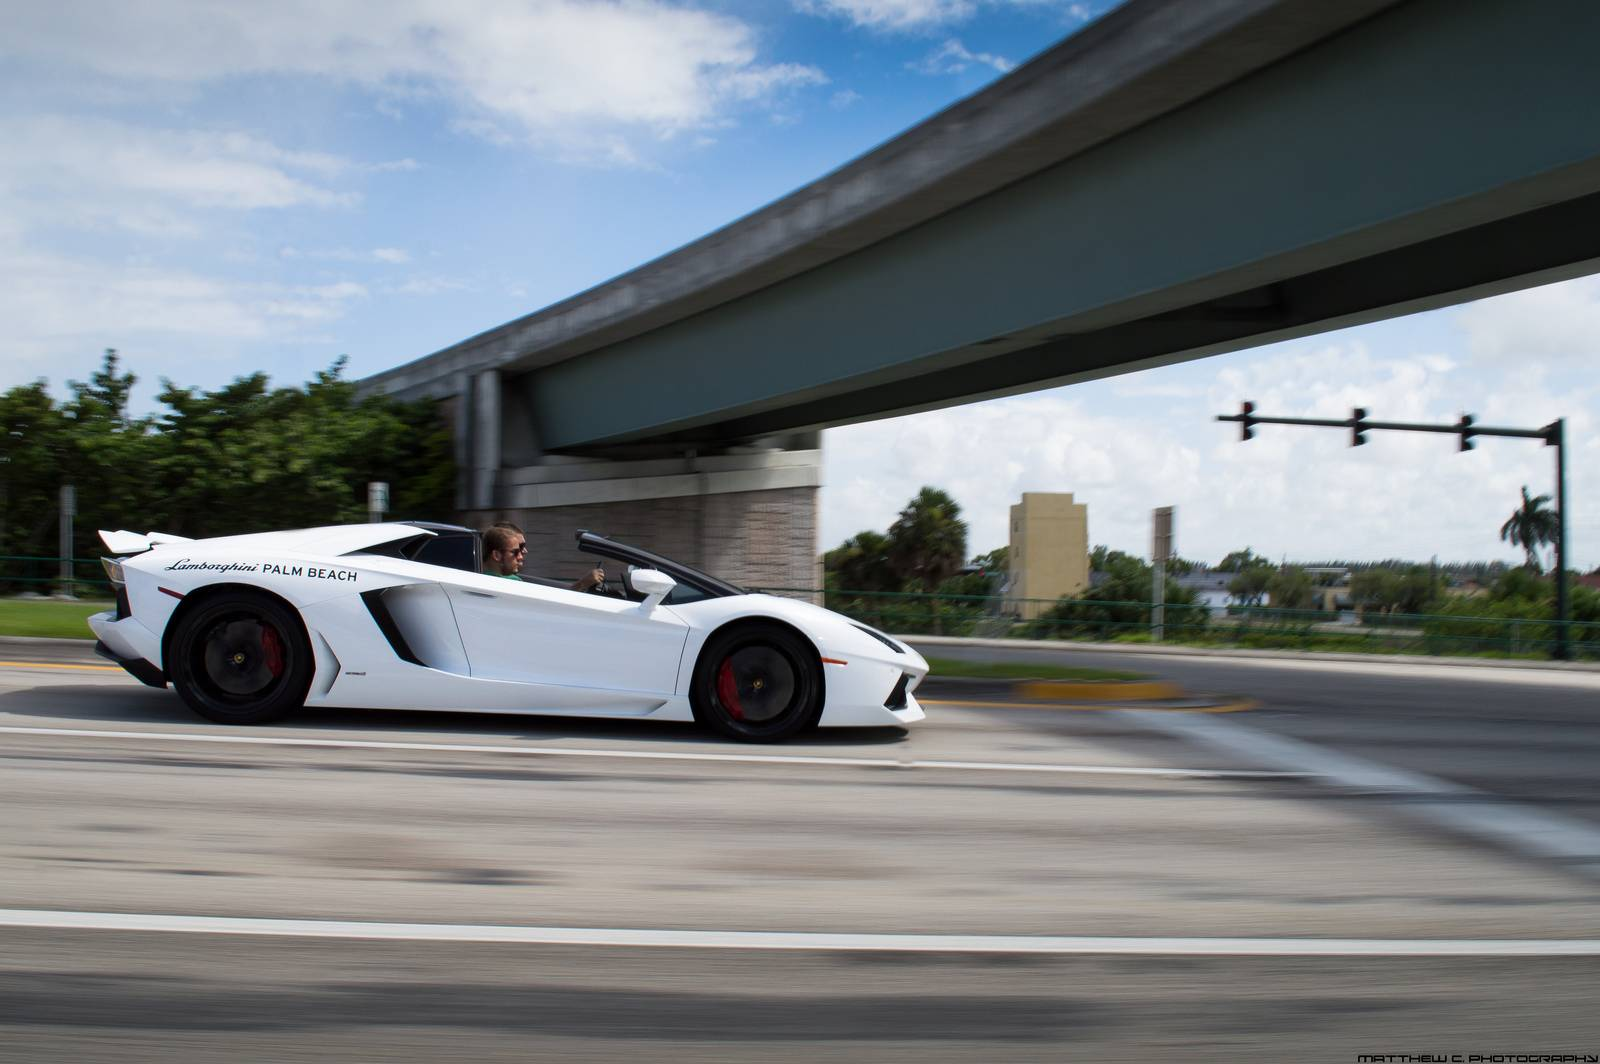 aventador roadster white. gallery 2014 lamborghini aventador roadster by matthew c photography white